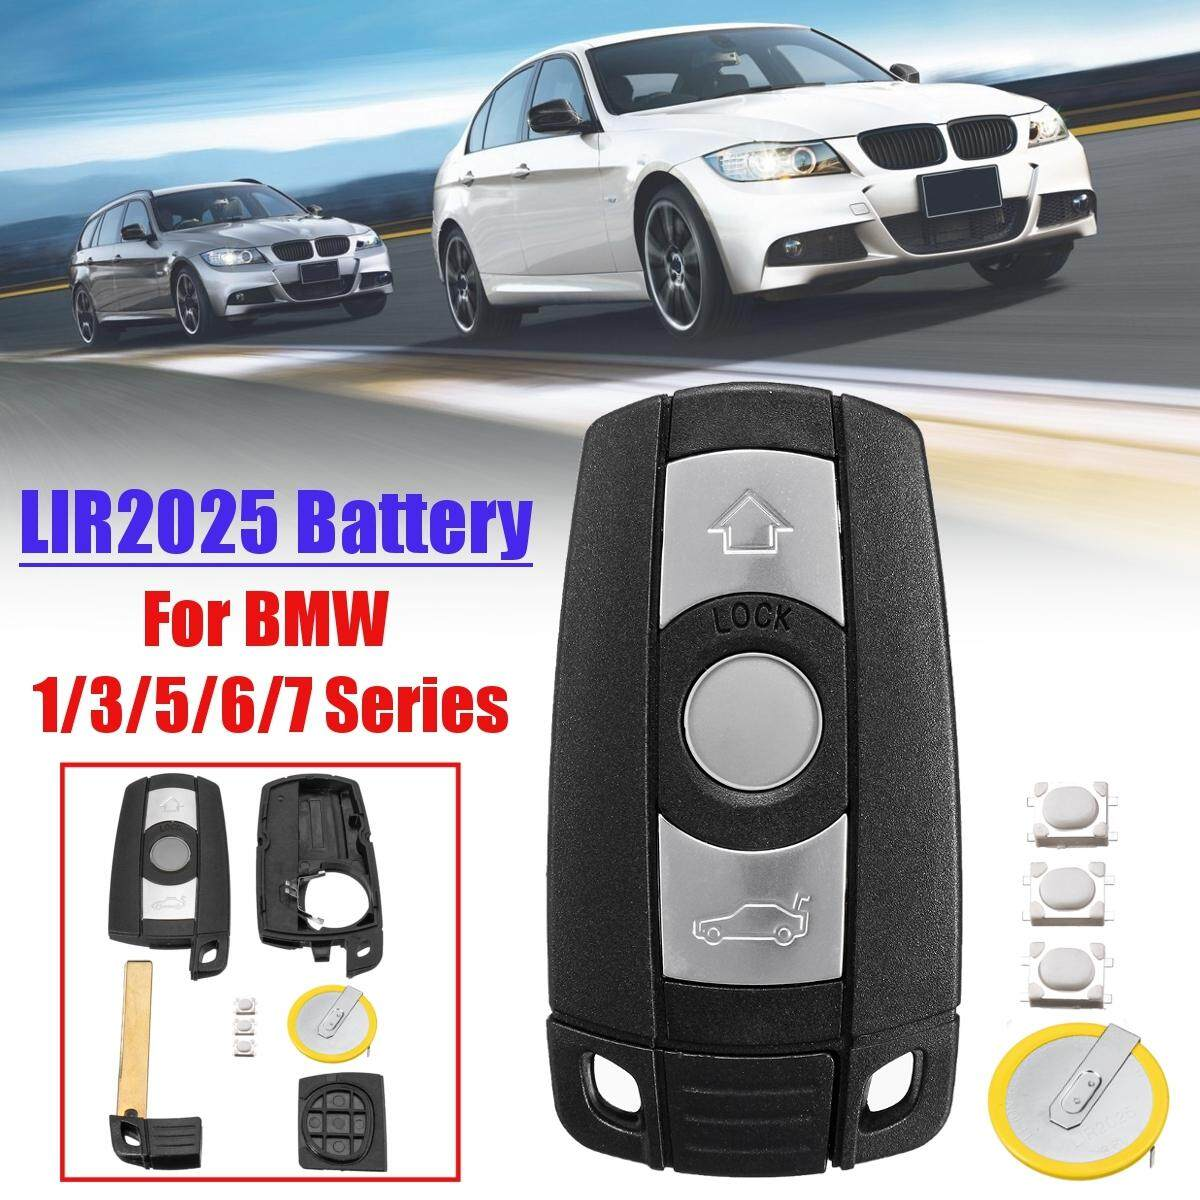 【Free Shipping + Flash Deal】3 Buttons Remote Key Fob With LIR2025 Charging  Bat-tery For BMW 1 3 5 6 7 Series